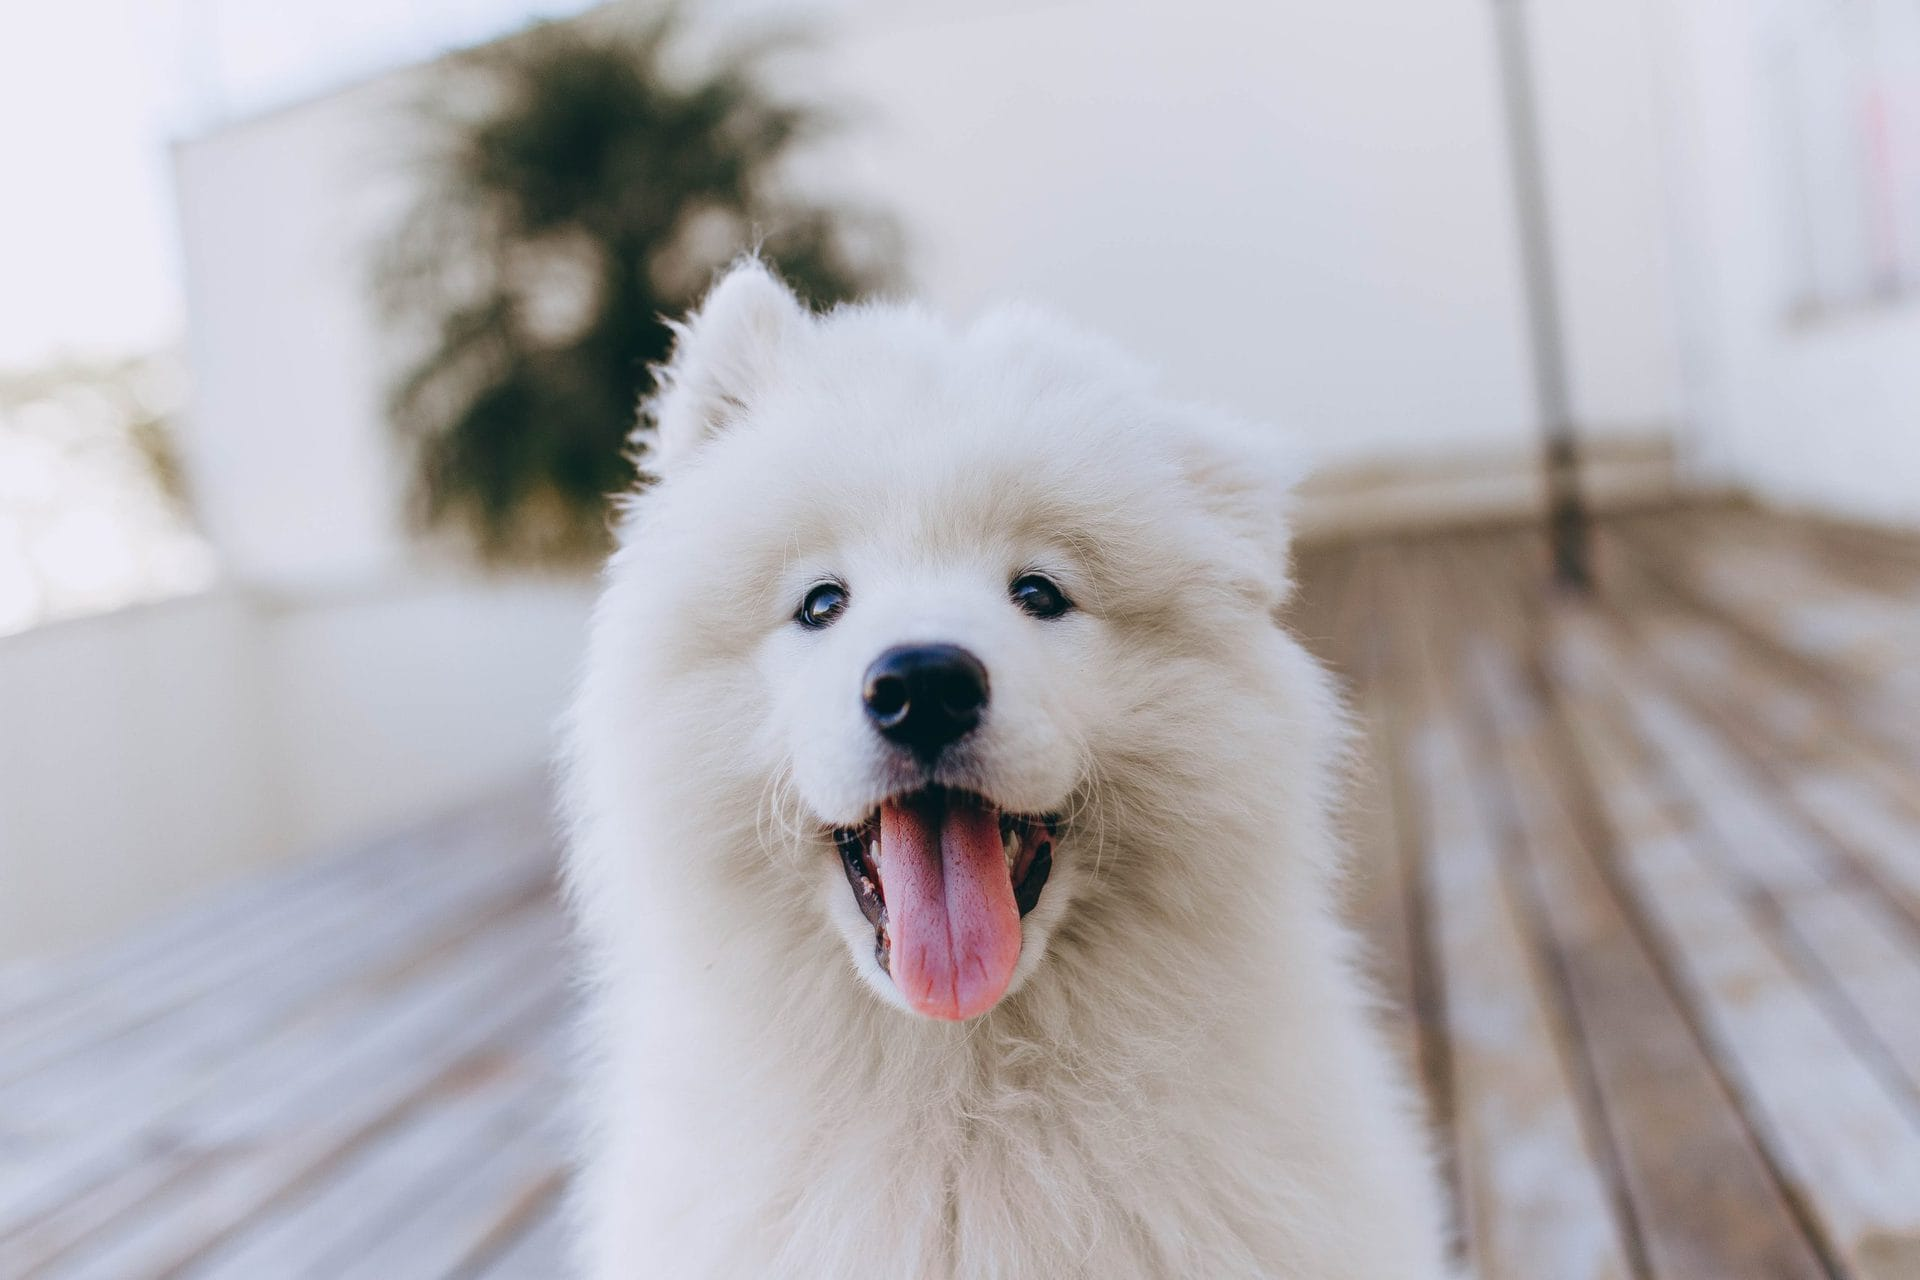 Pale Gums in Dogs: What It Means, Causes & Solutions